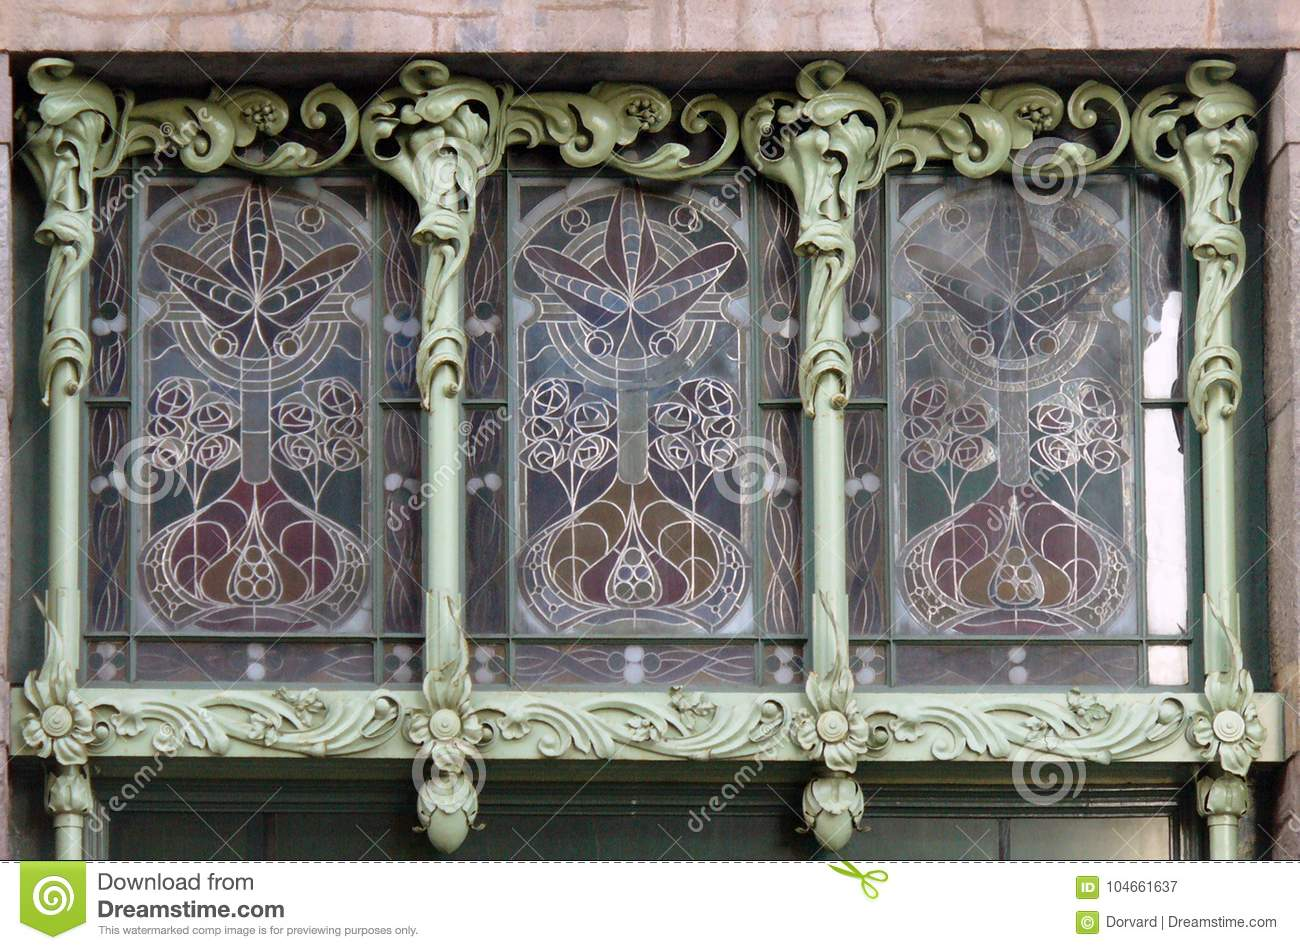 Décoration Art Nouveau Stained Glass Window In Art Nouveau Stock Image Image Of Details